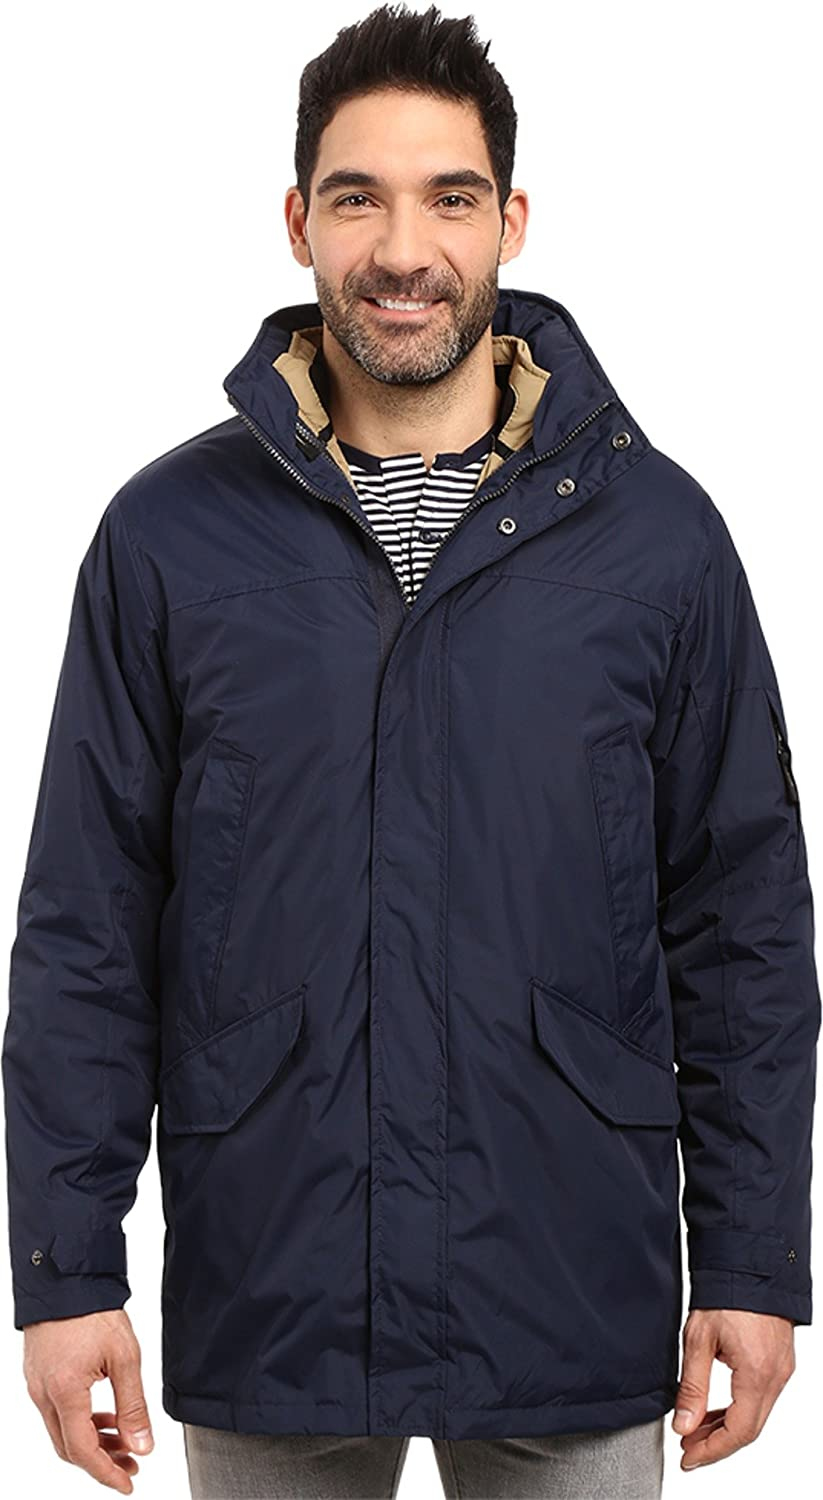 IZOD depot Men's Ranking TOP8 Insulated 3-in-1 Parka Zip Jacket Inner Out with